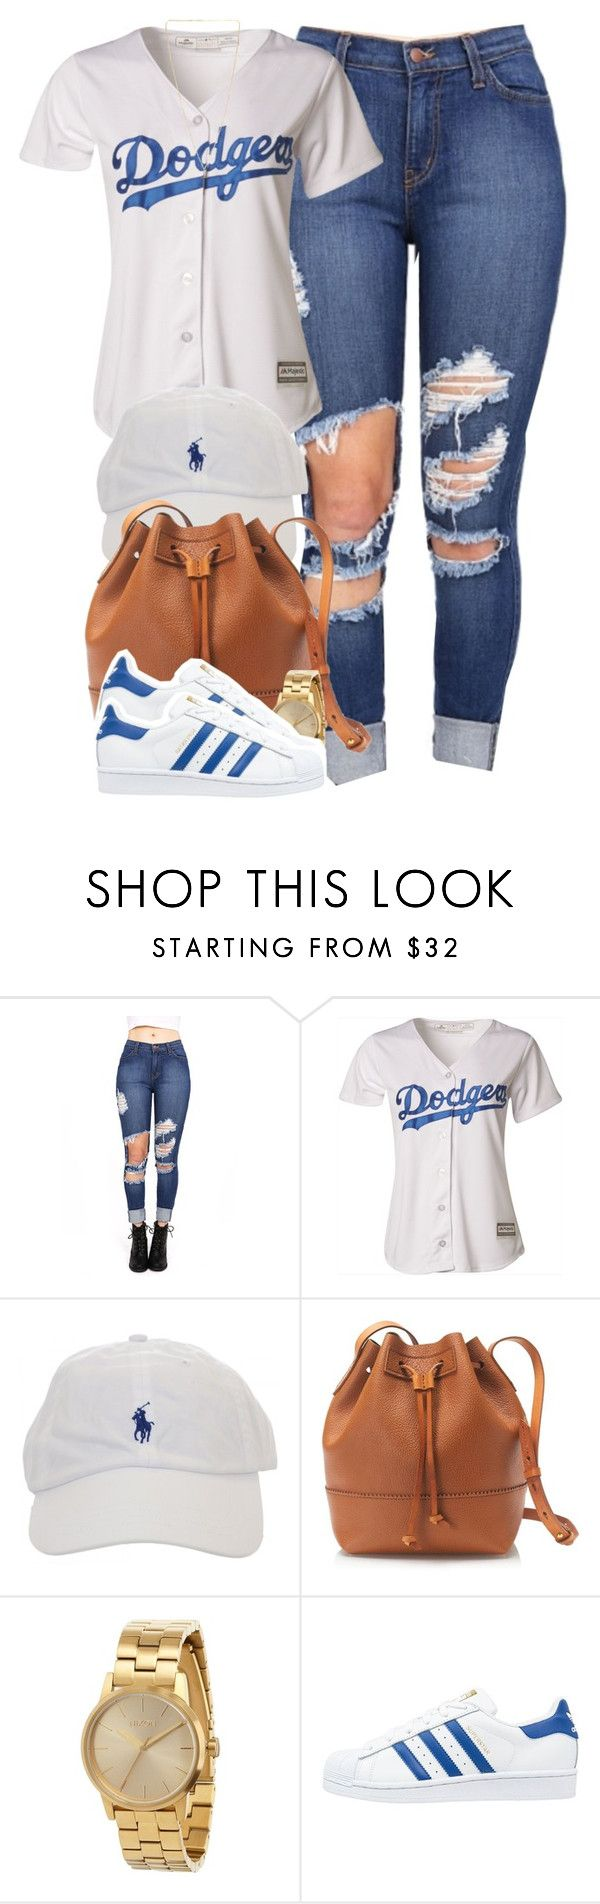 """Waiting for your items to arrive that you ordered online is torture "" by cheerstostyle ❤ liked on Polyvore featuring Majestic, J.Crew, Nixon, adidas Originals and Pieces"